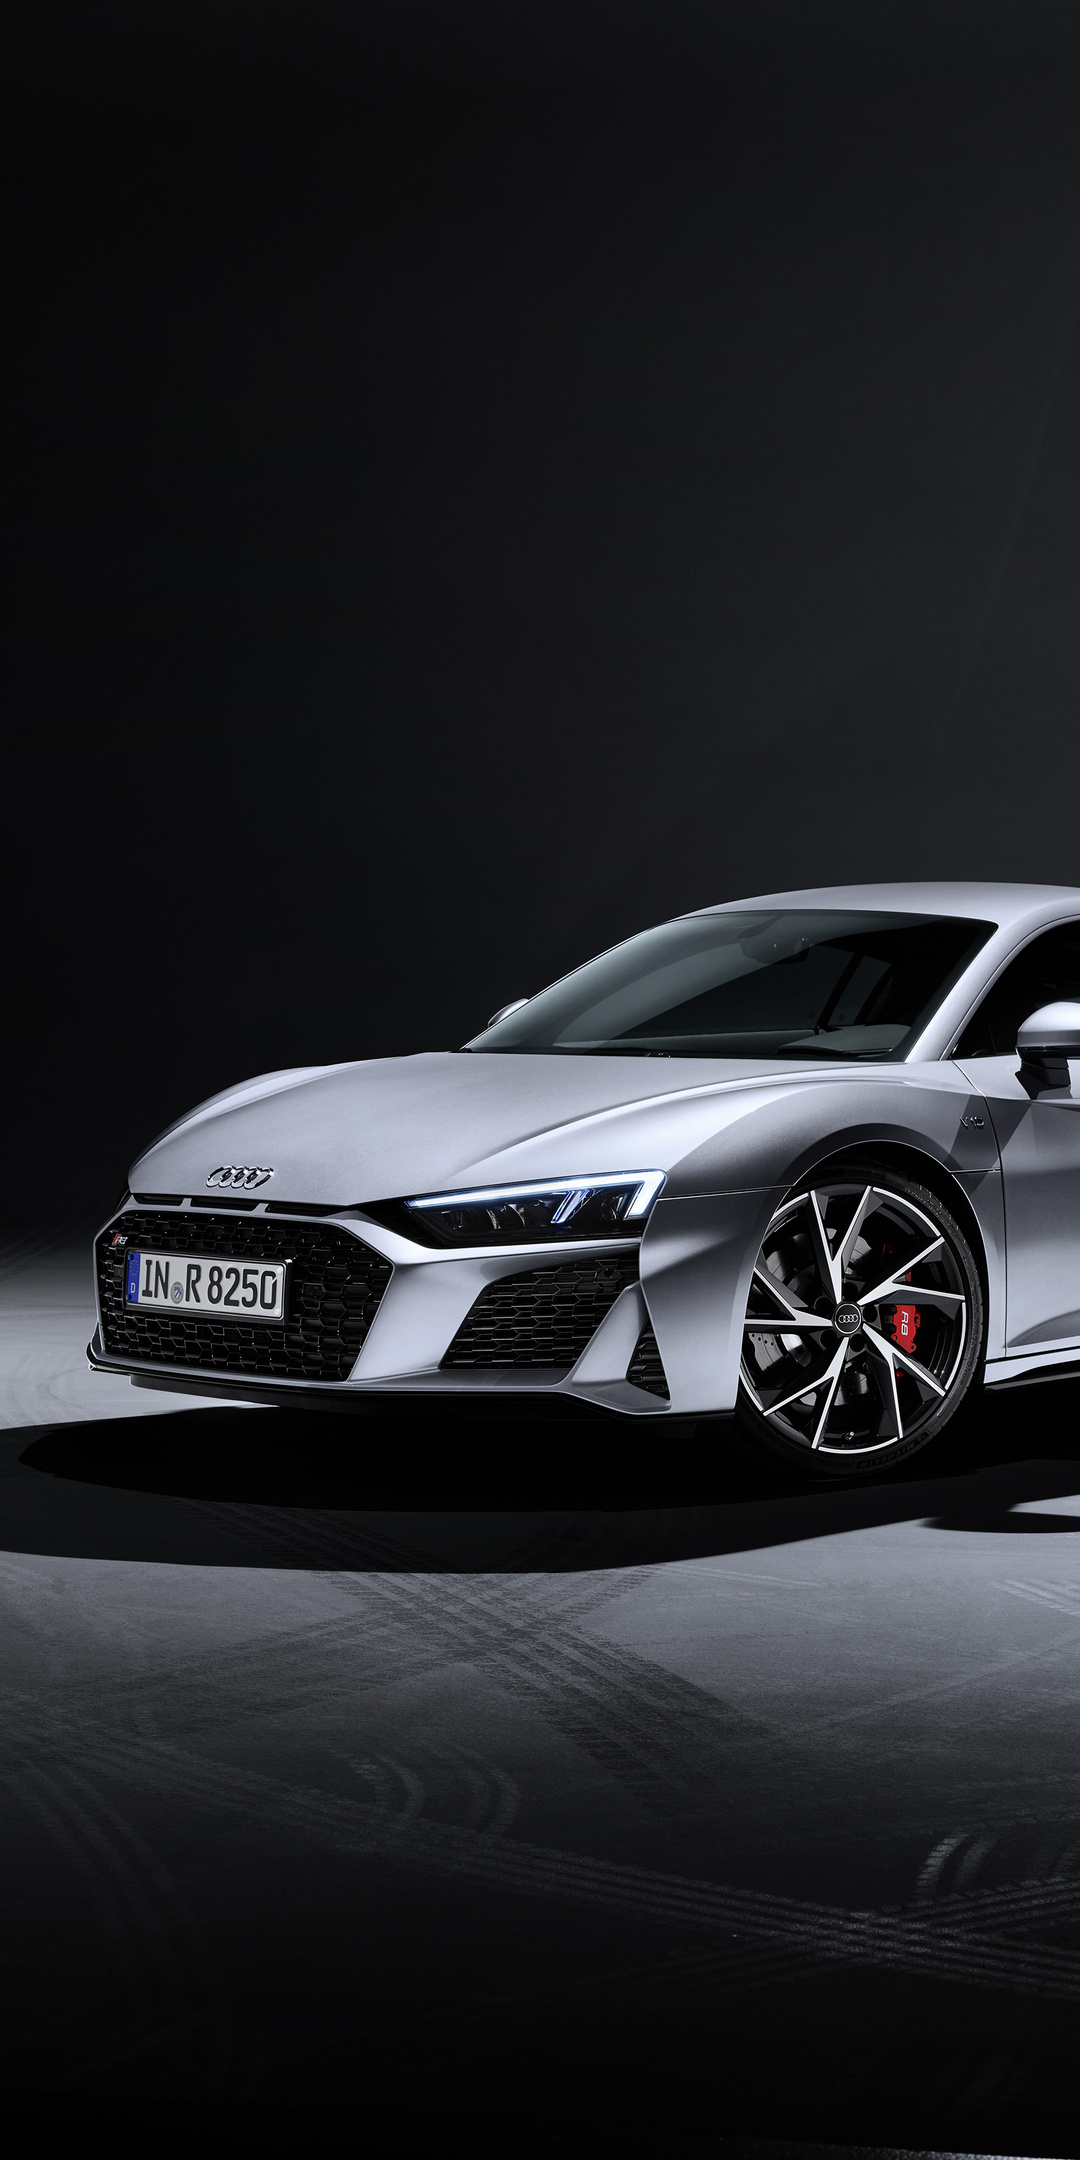 audi-r8-v10-rwd-coupe-2019-side-view-mo.jpg